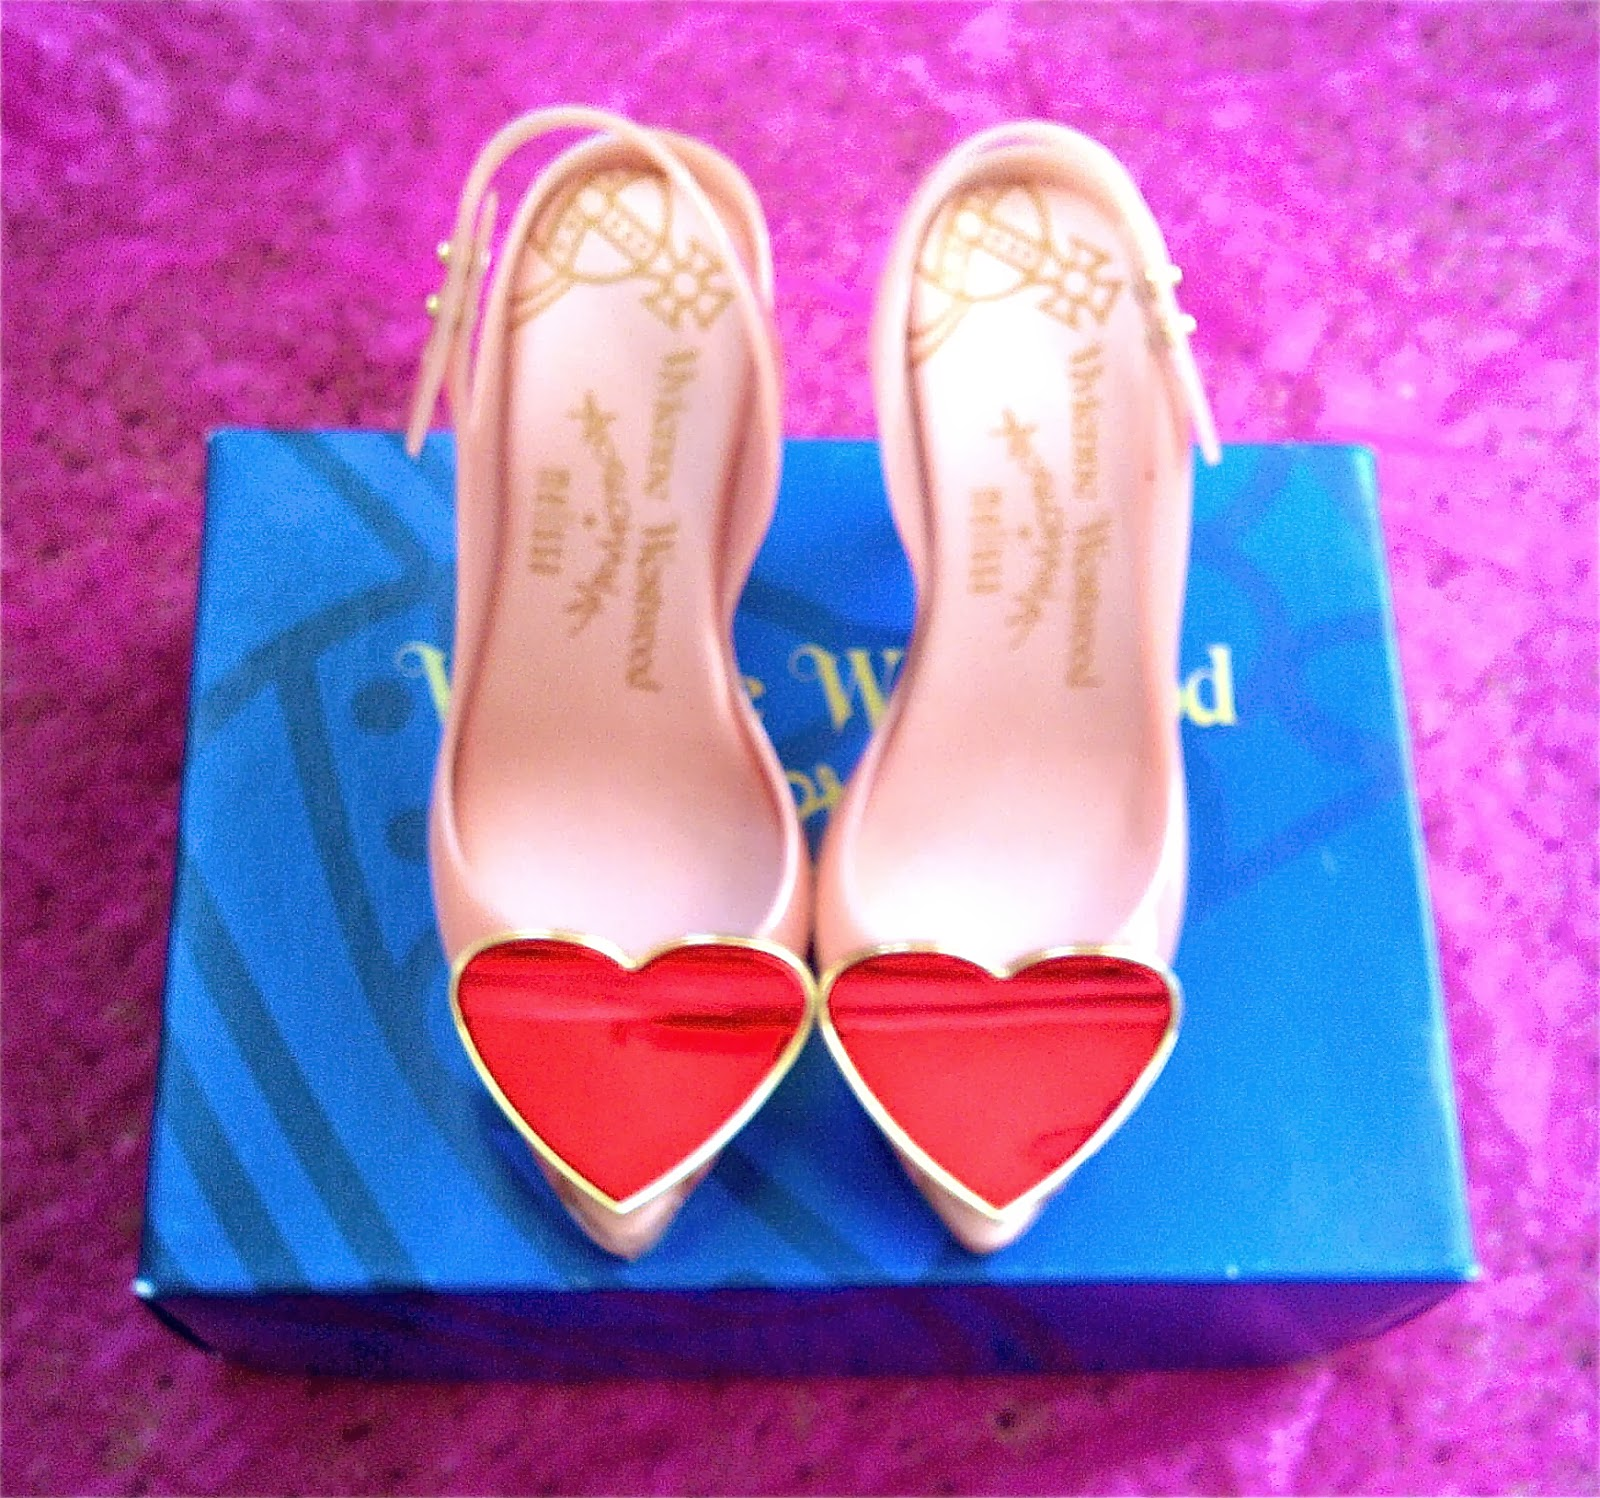 Vivienne Westwood for Melissa - Lychee/Red Heart Shoes (My New Love)